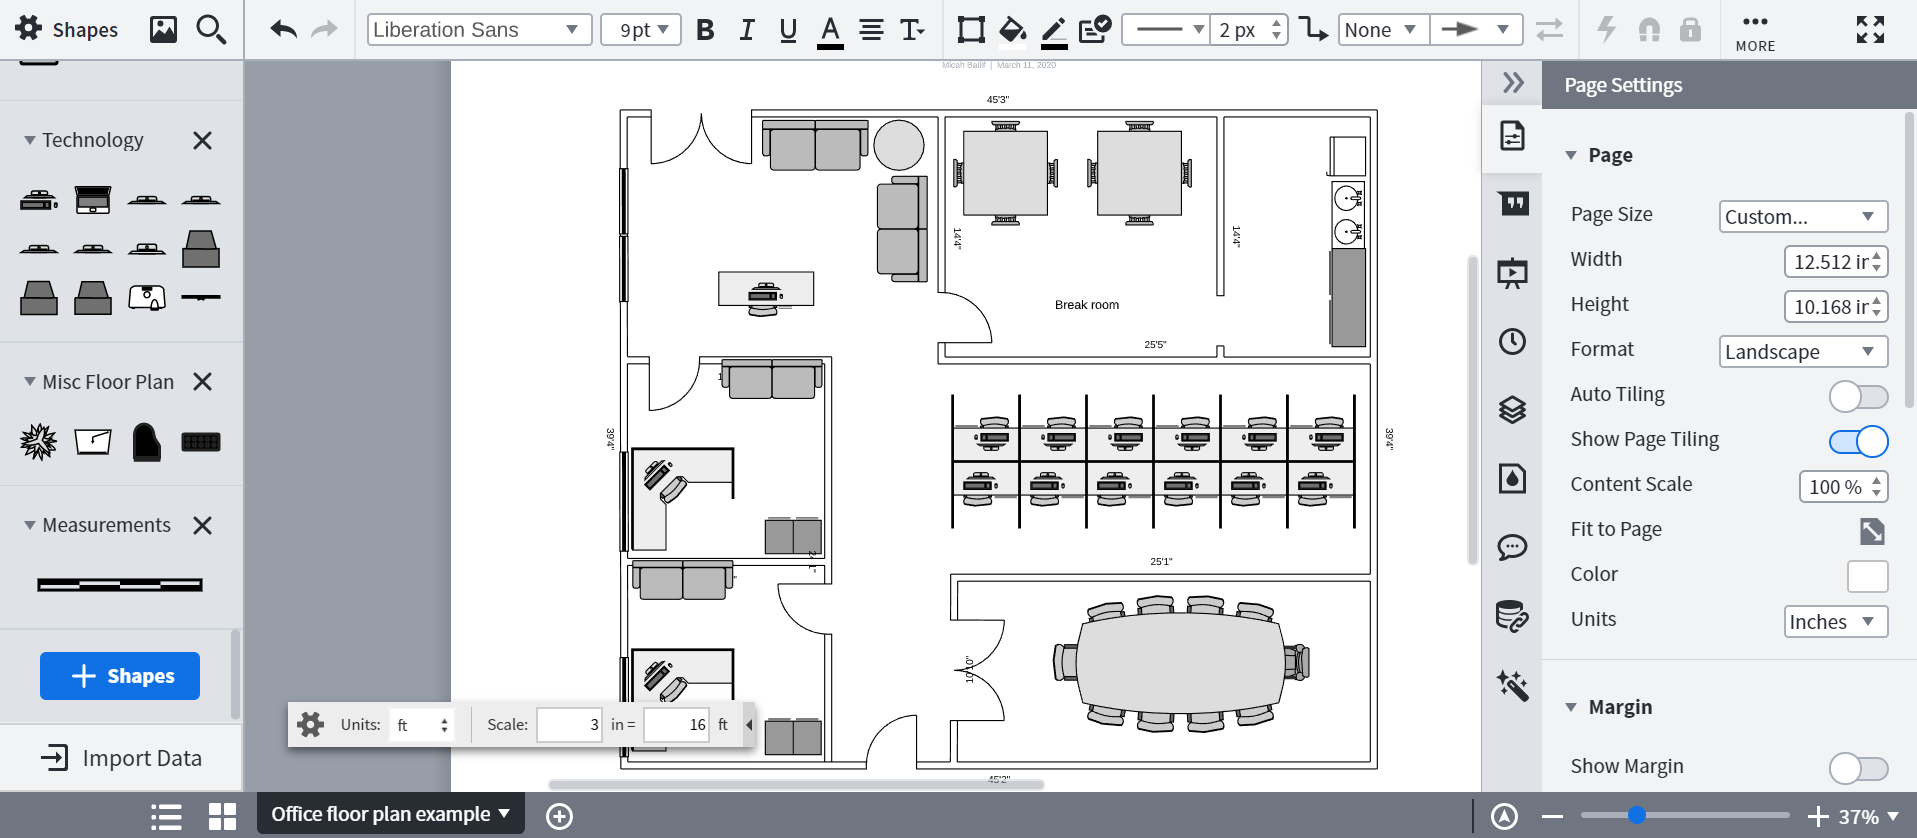 FloorPlan_example.png